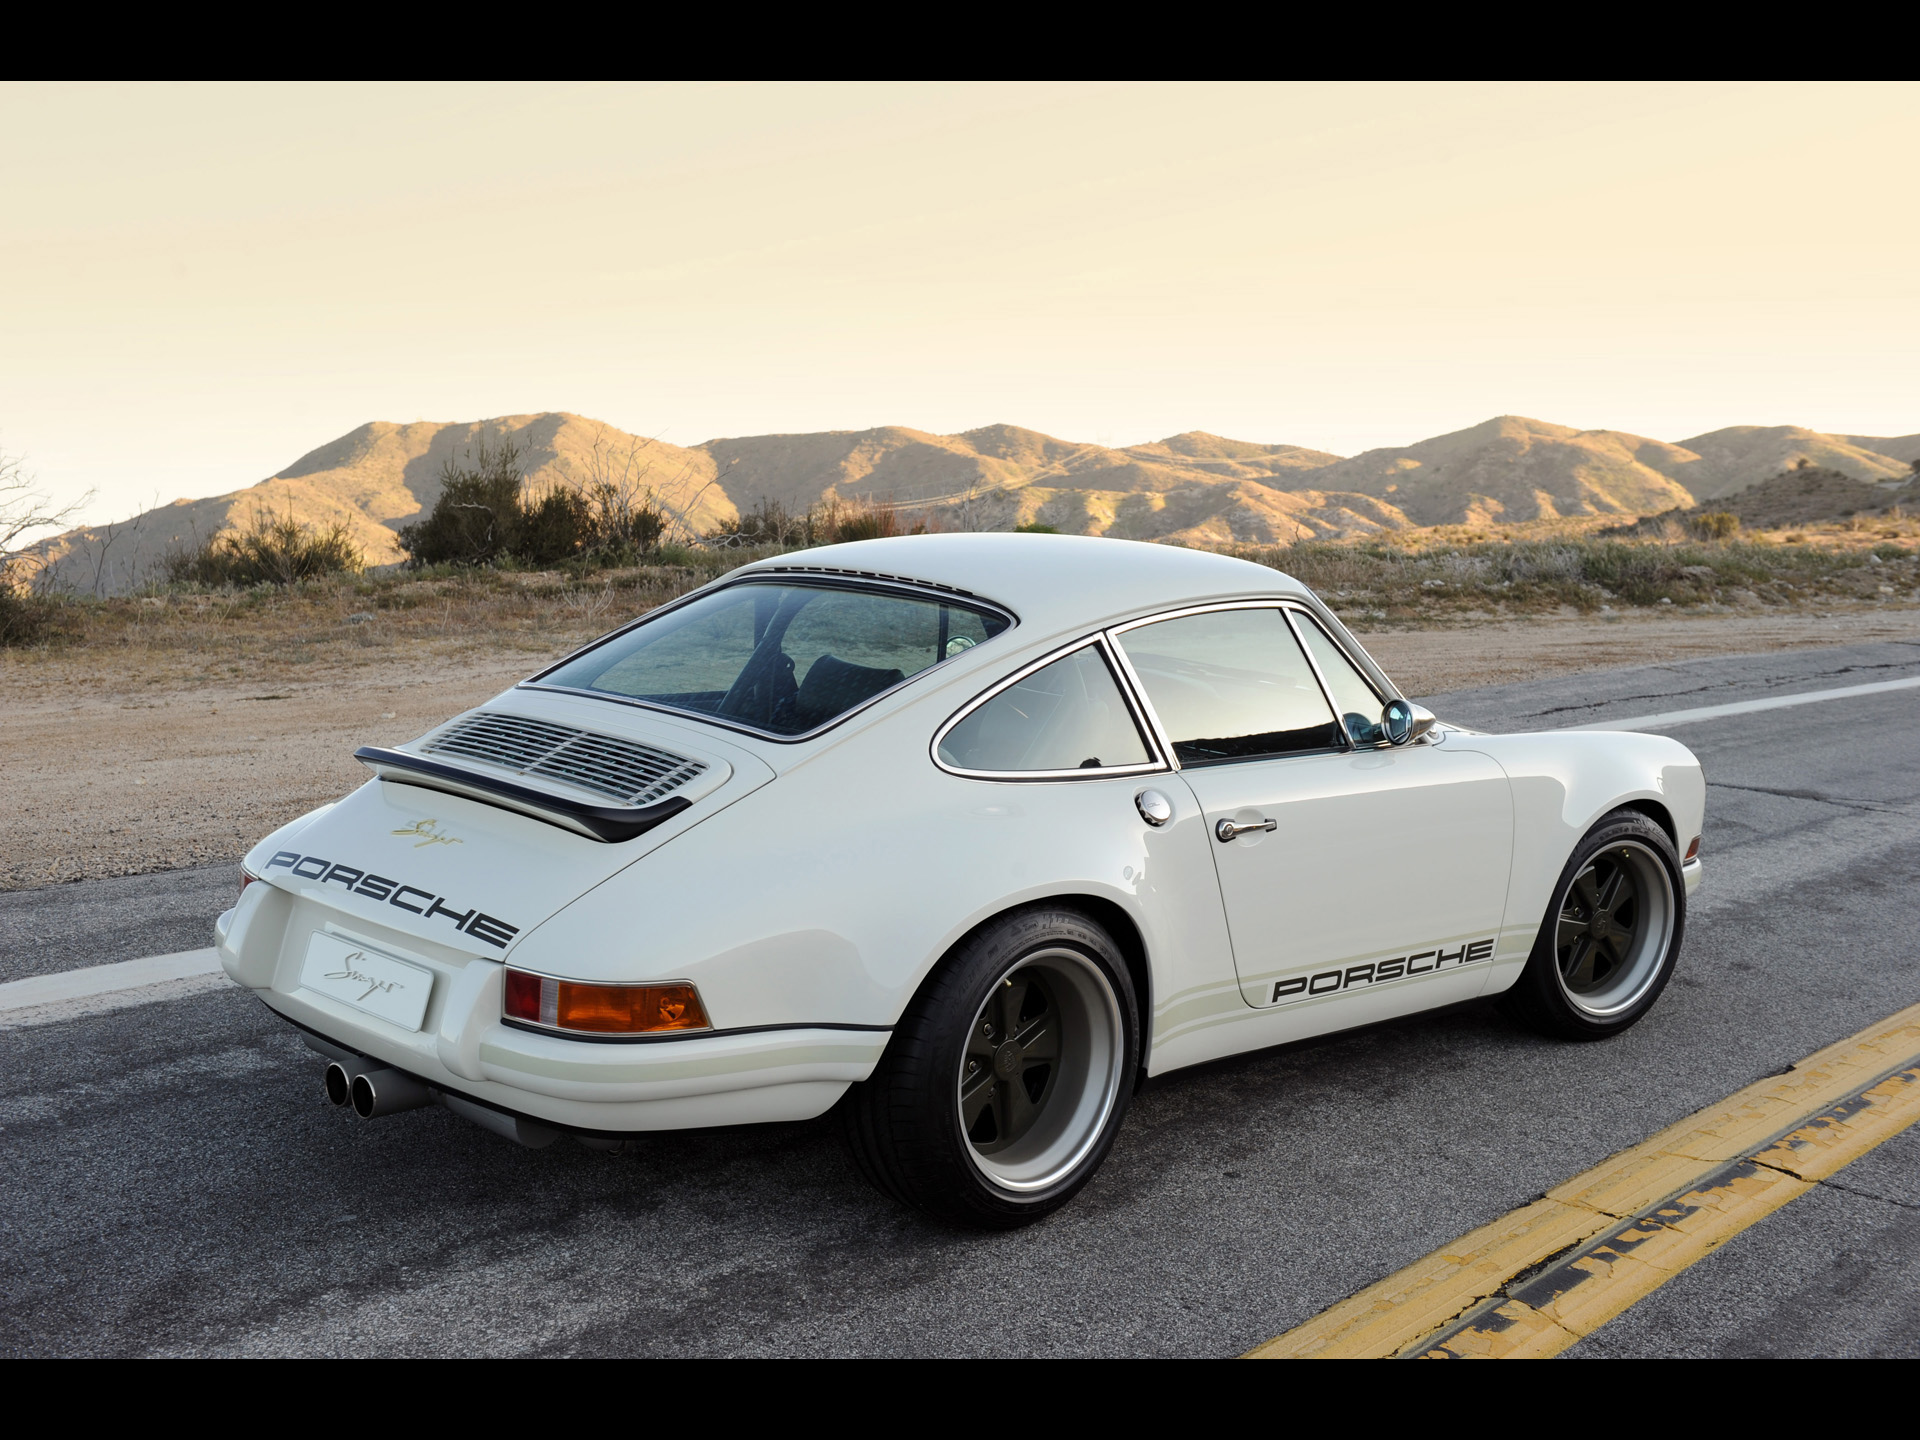 White Singer Porsche 911 Side Close-up wallpapers | White